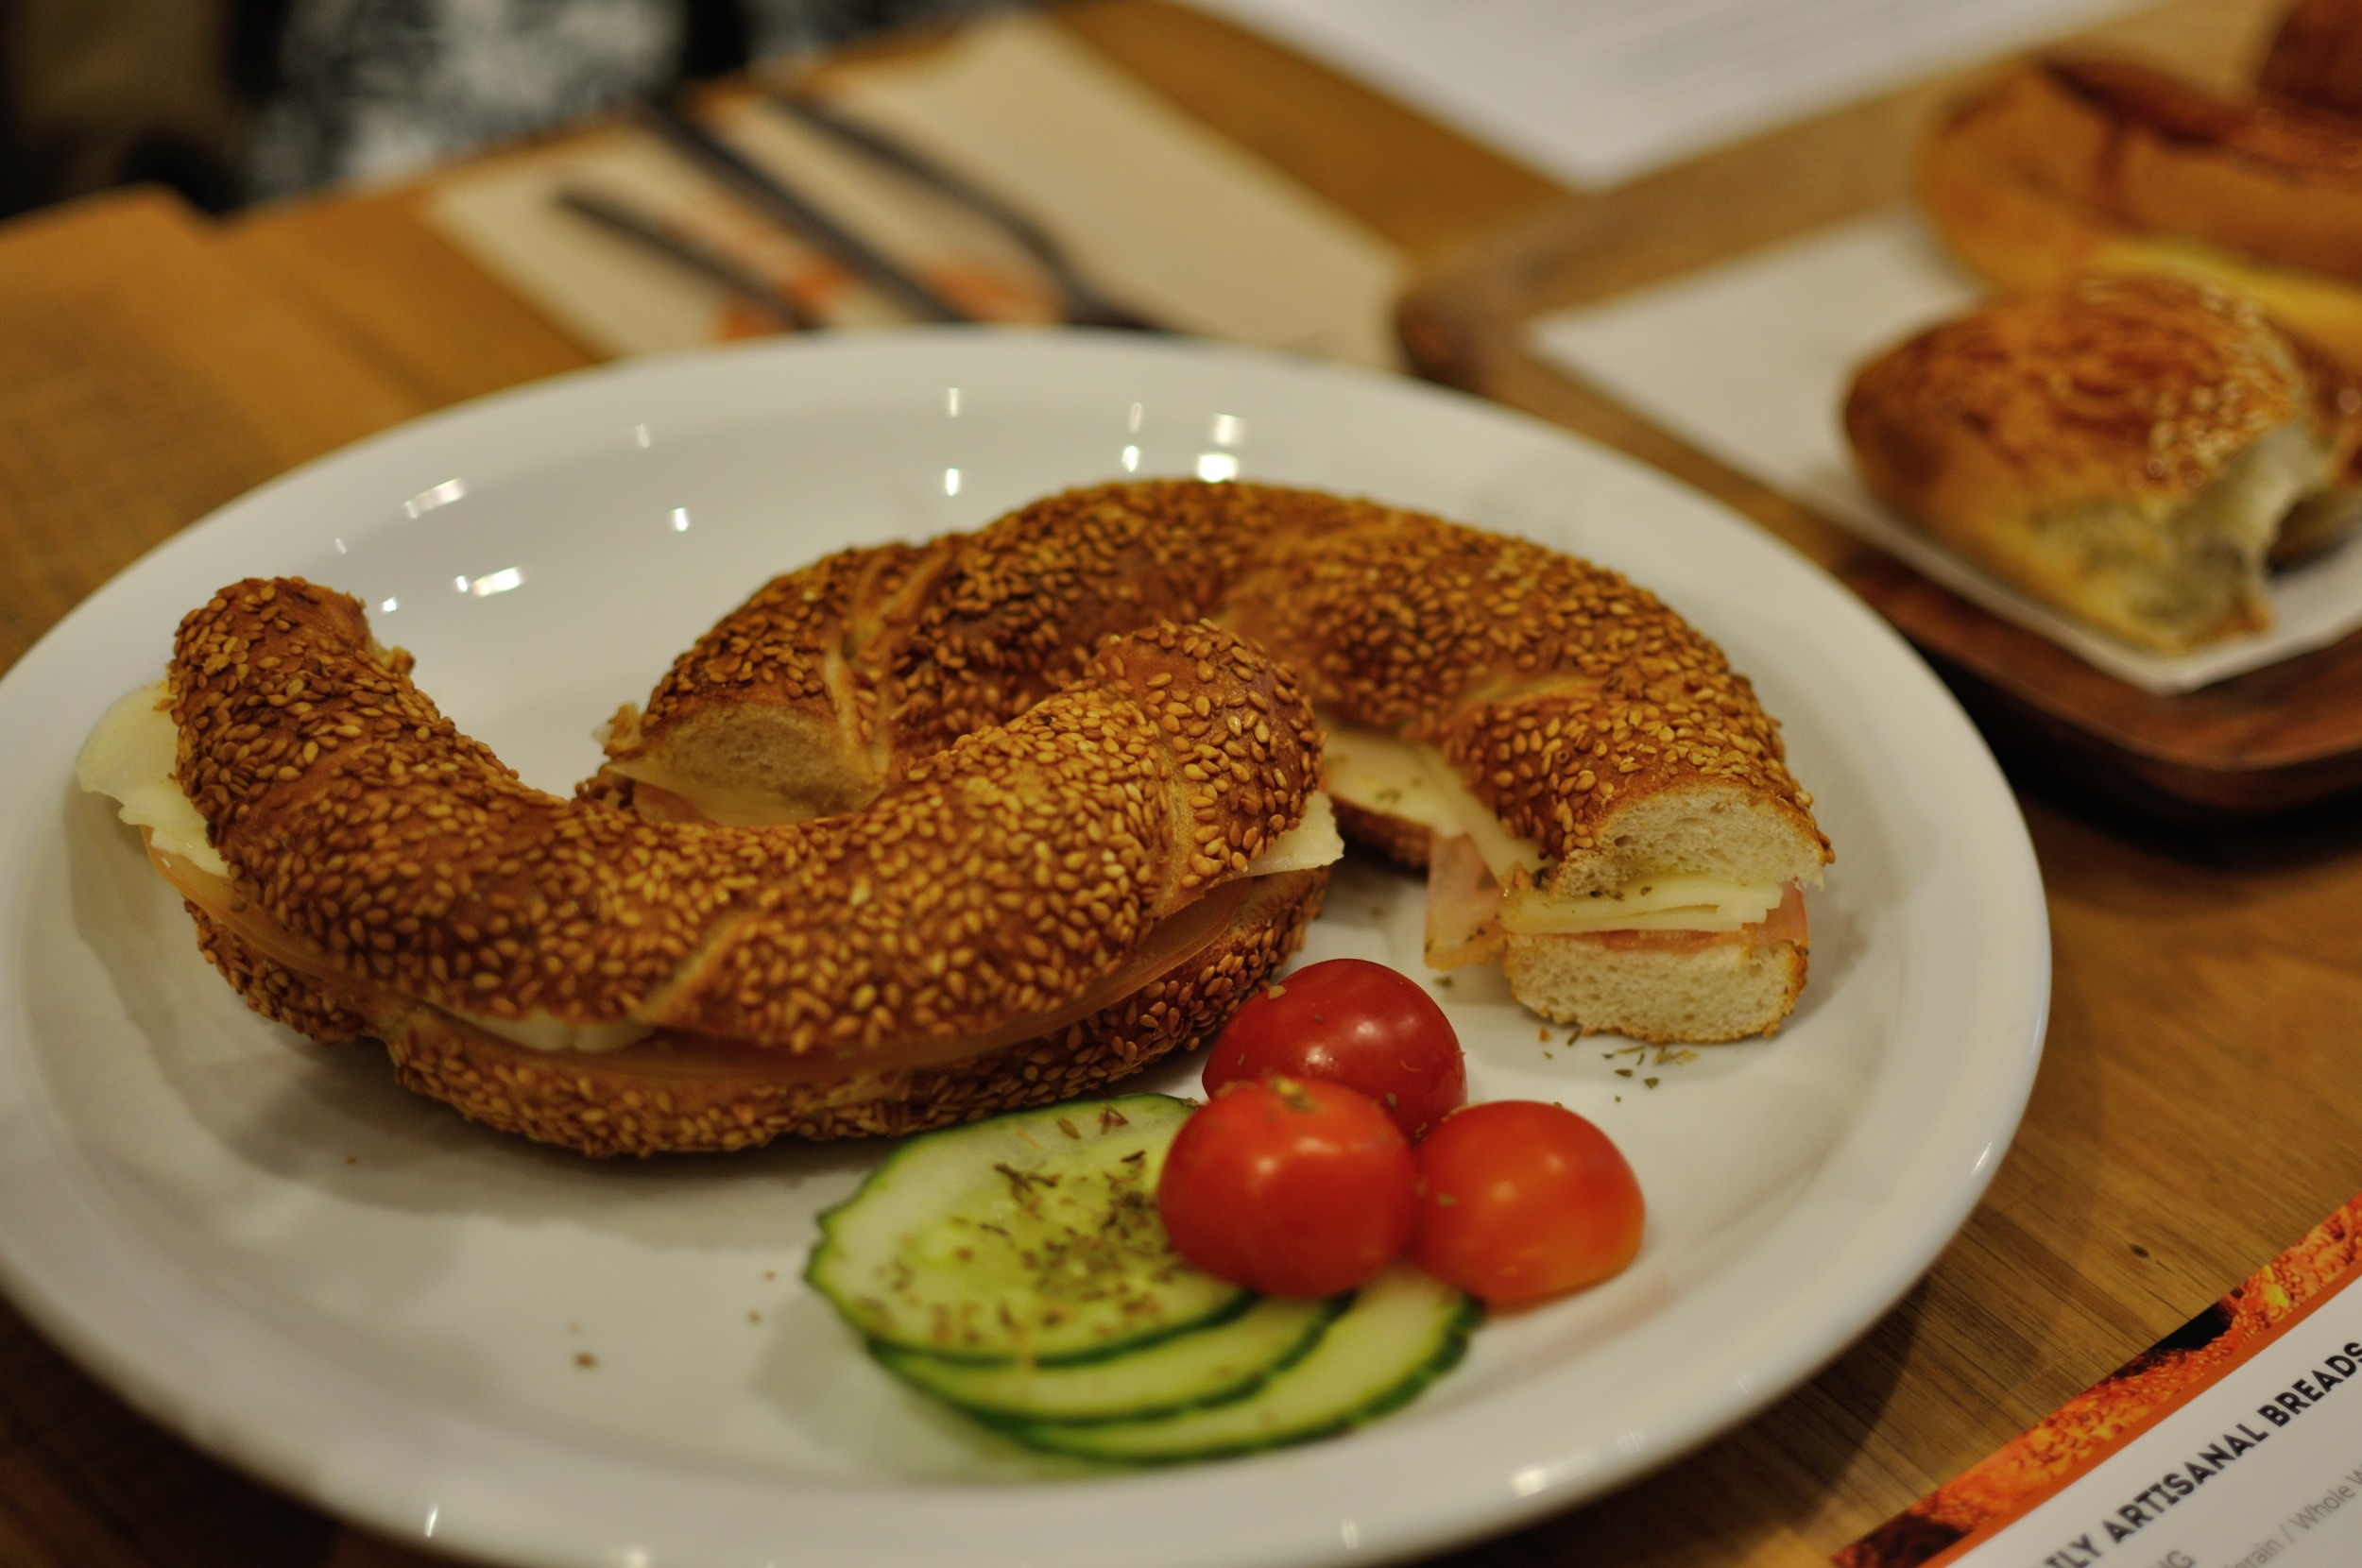 Classic simit with kasseri cheese and tomato